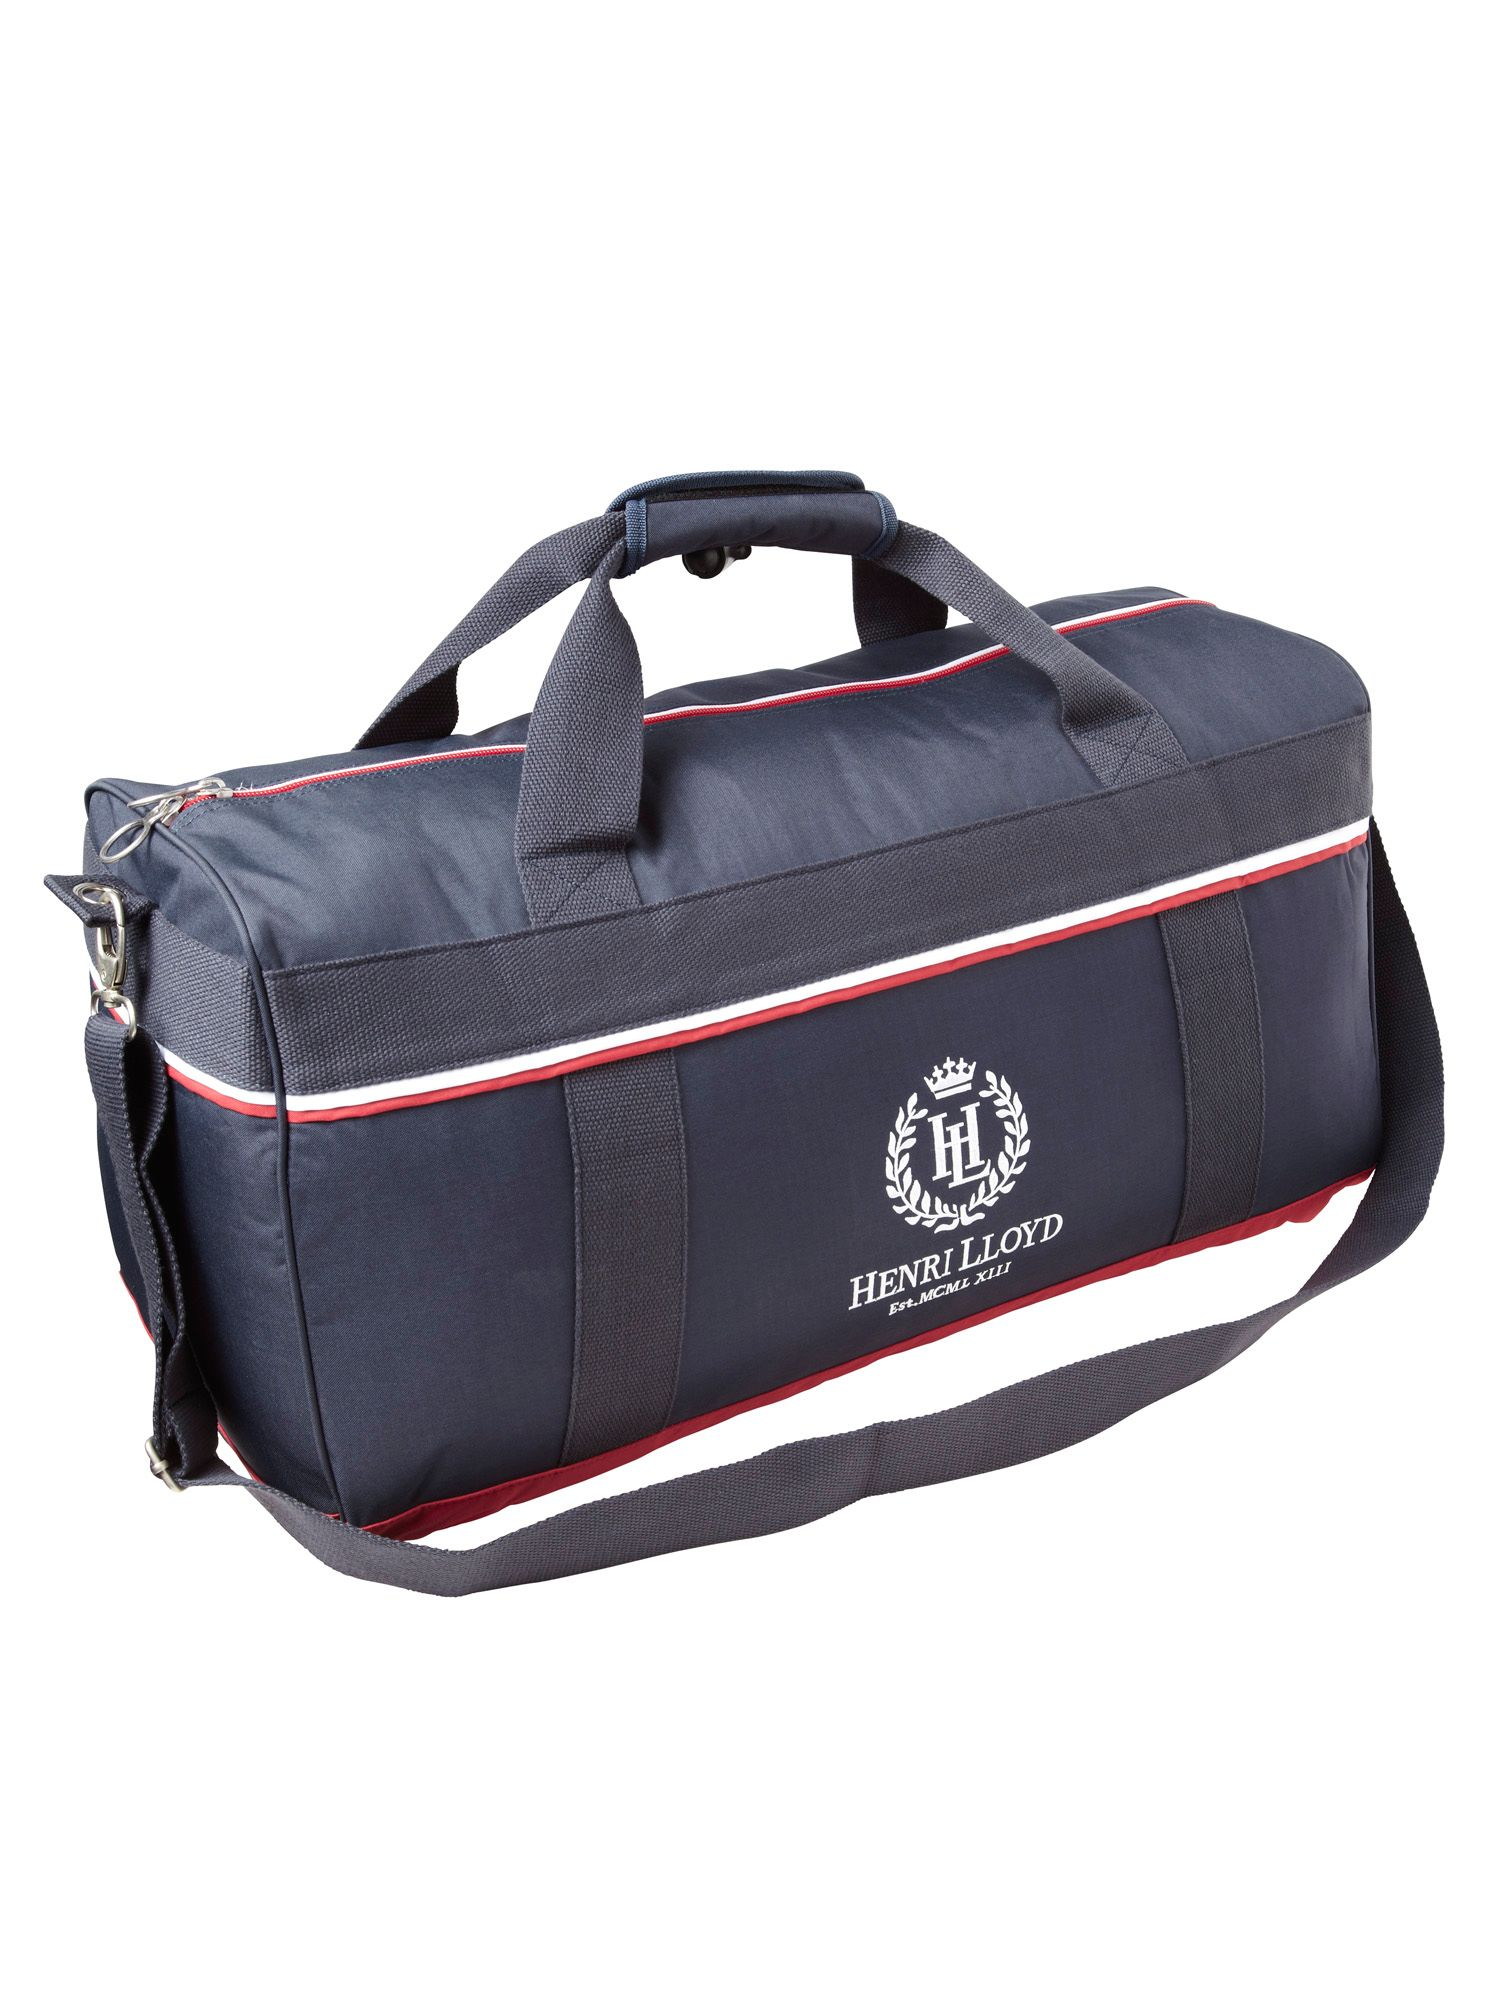 Gleaston gym bag